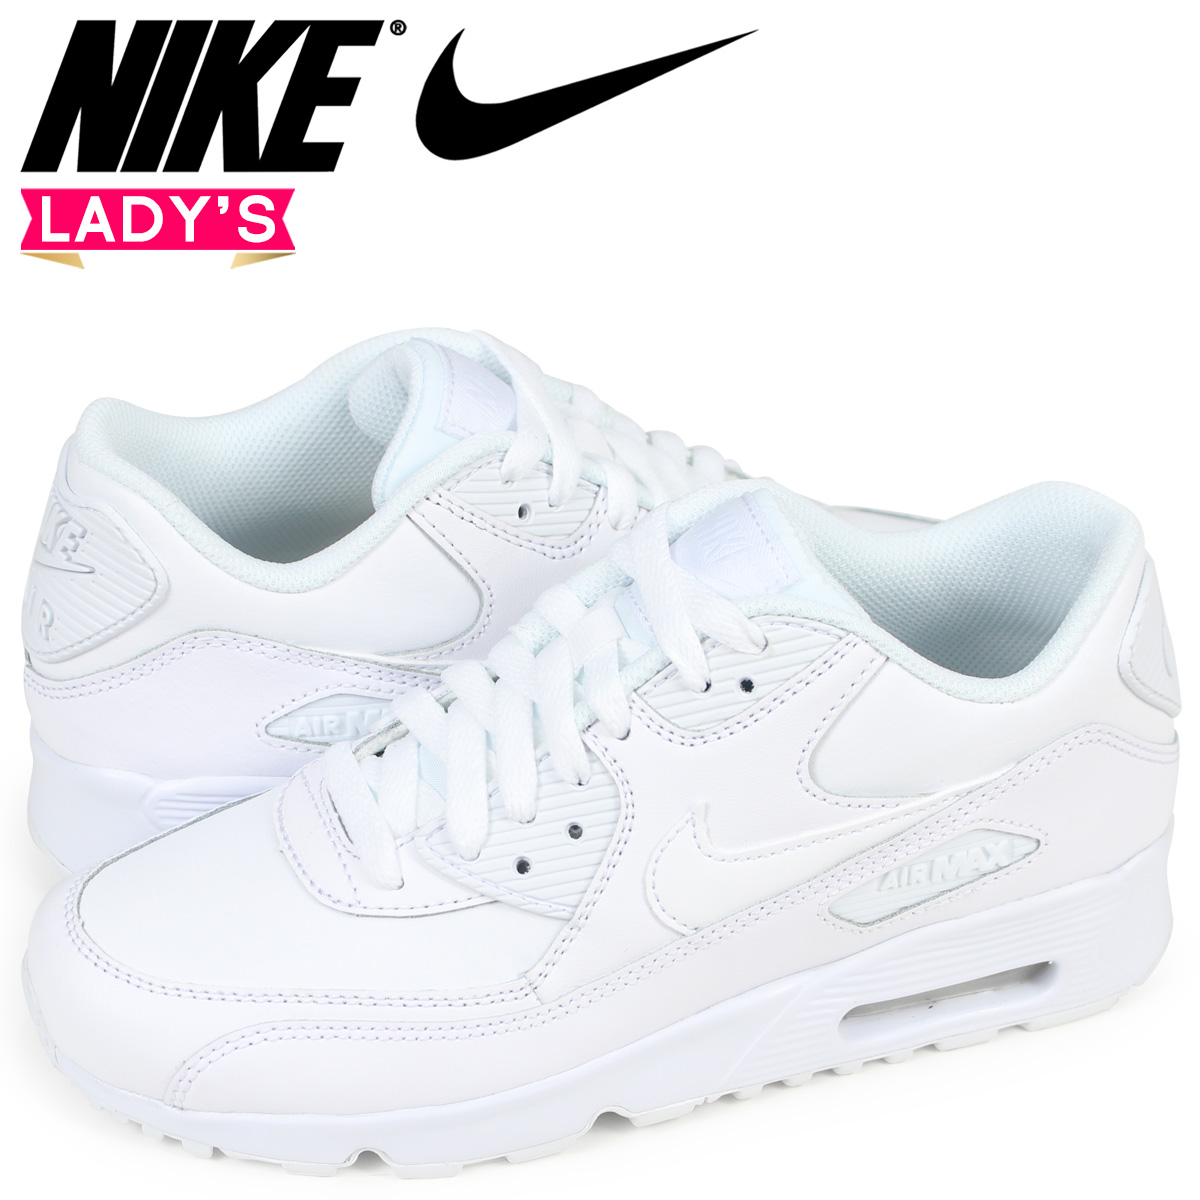 size 40 c4a9a 776cd NIKE Kie Ney AMAX 90 Lady s sneakers AIR MAX 90 LEATHER GS 833,412-100 white  white  load planned reentry load in reservation product 5 21 containing